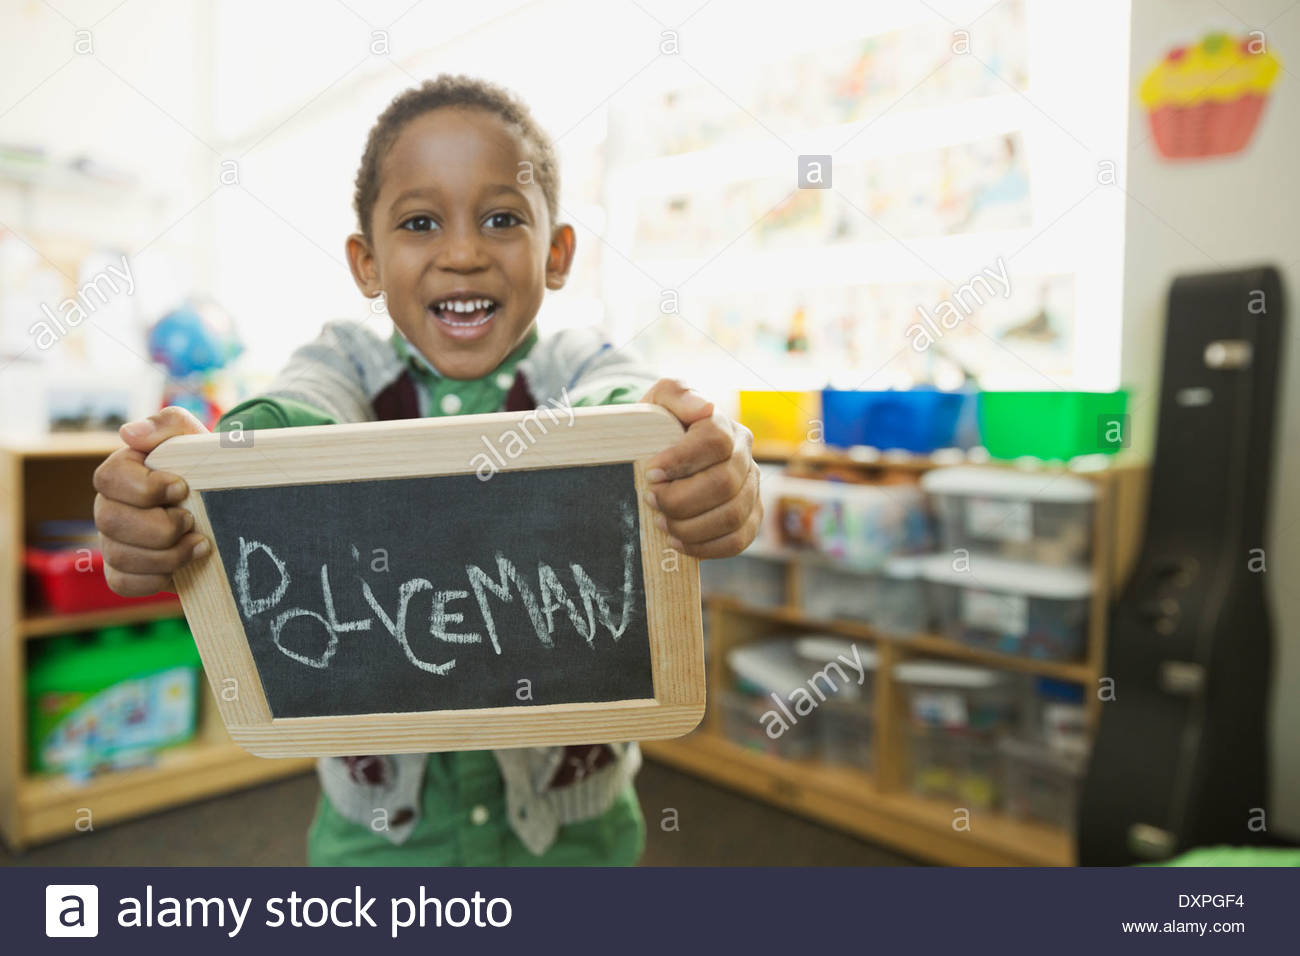 Boy holding slate with 'Policeman' written on it - Stock Image